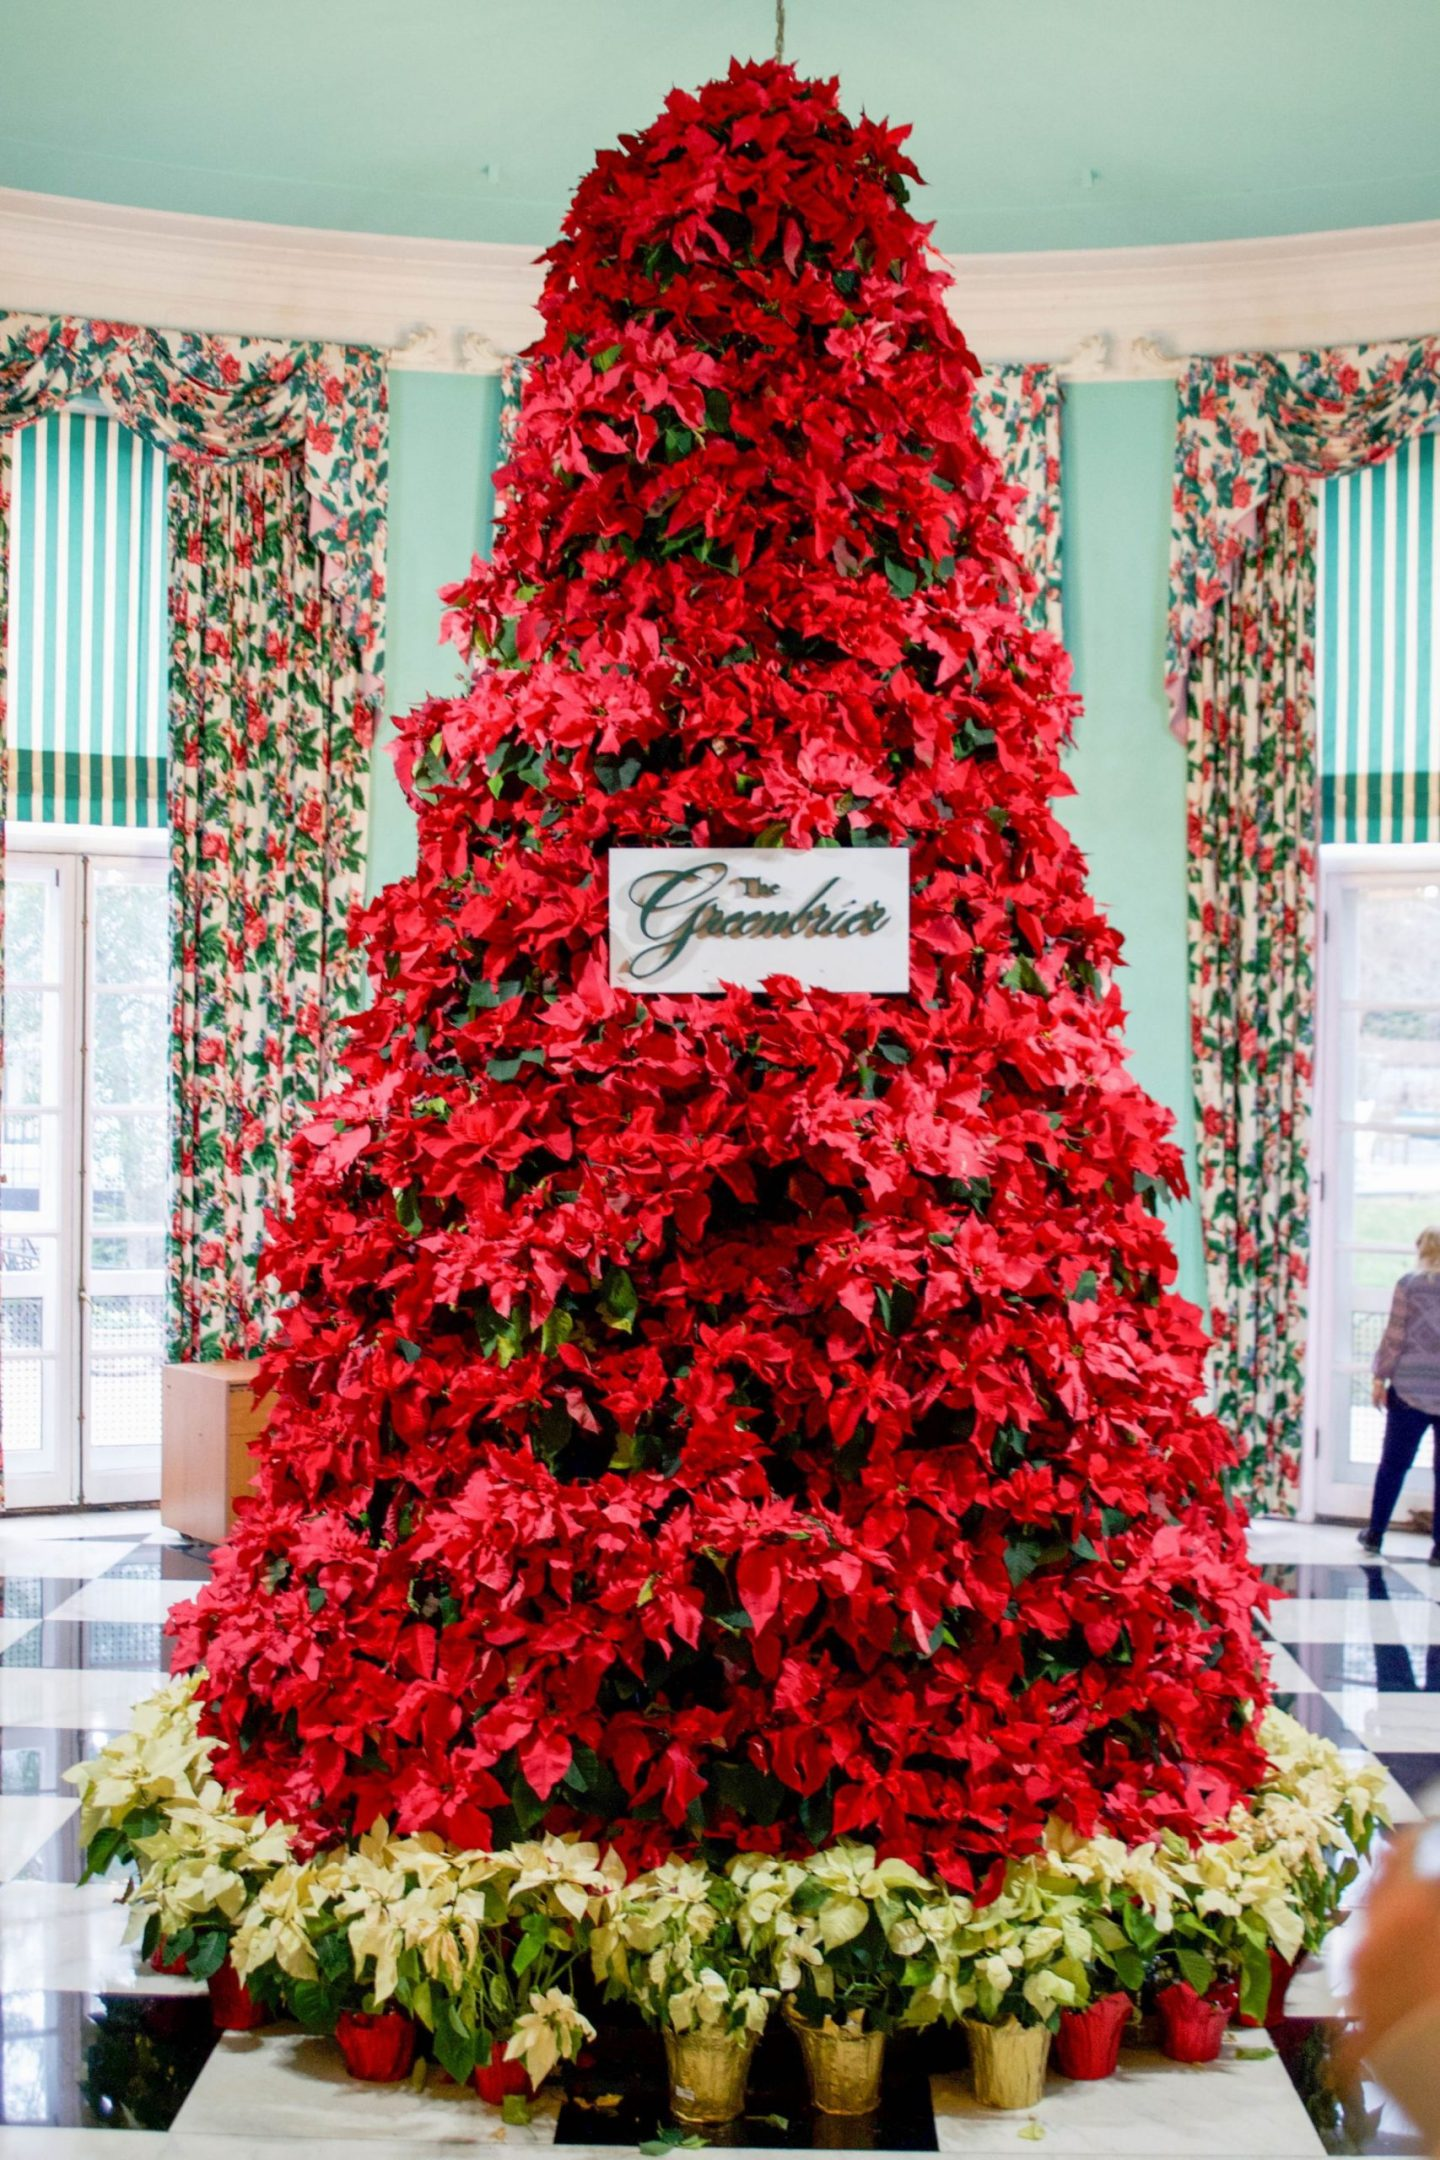 wintertime at the greenbrier - stay at the greenbrier - greenbrier during the winter - greenbrier review - greenbrier poinsettia tree